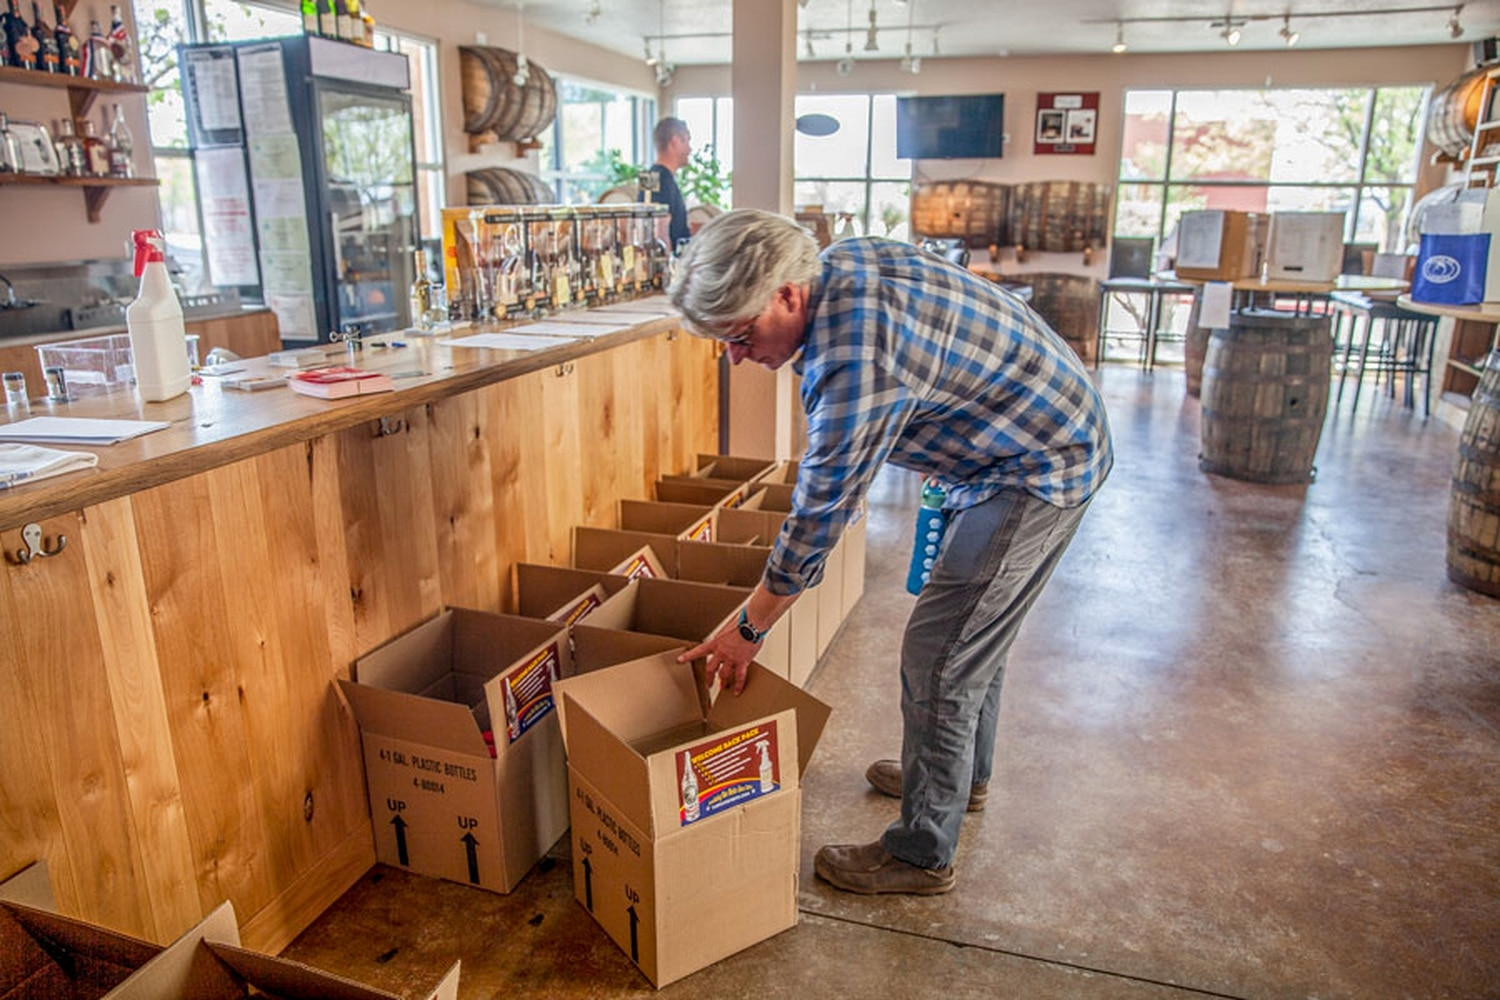 """Colin Keegan and the team at Santa Fe Spirits created """"Welcome Back"""" packs for reopening businesses that need hand sanitizers and disinfectants."""